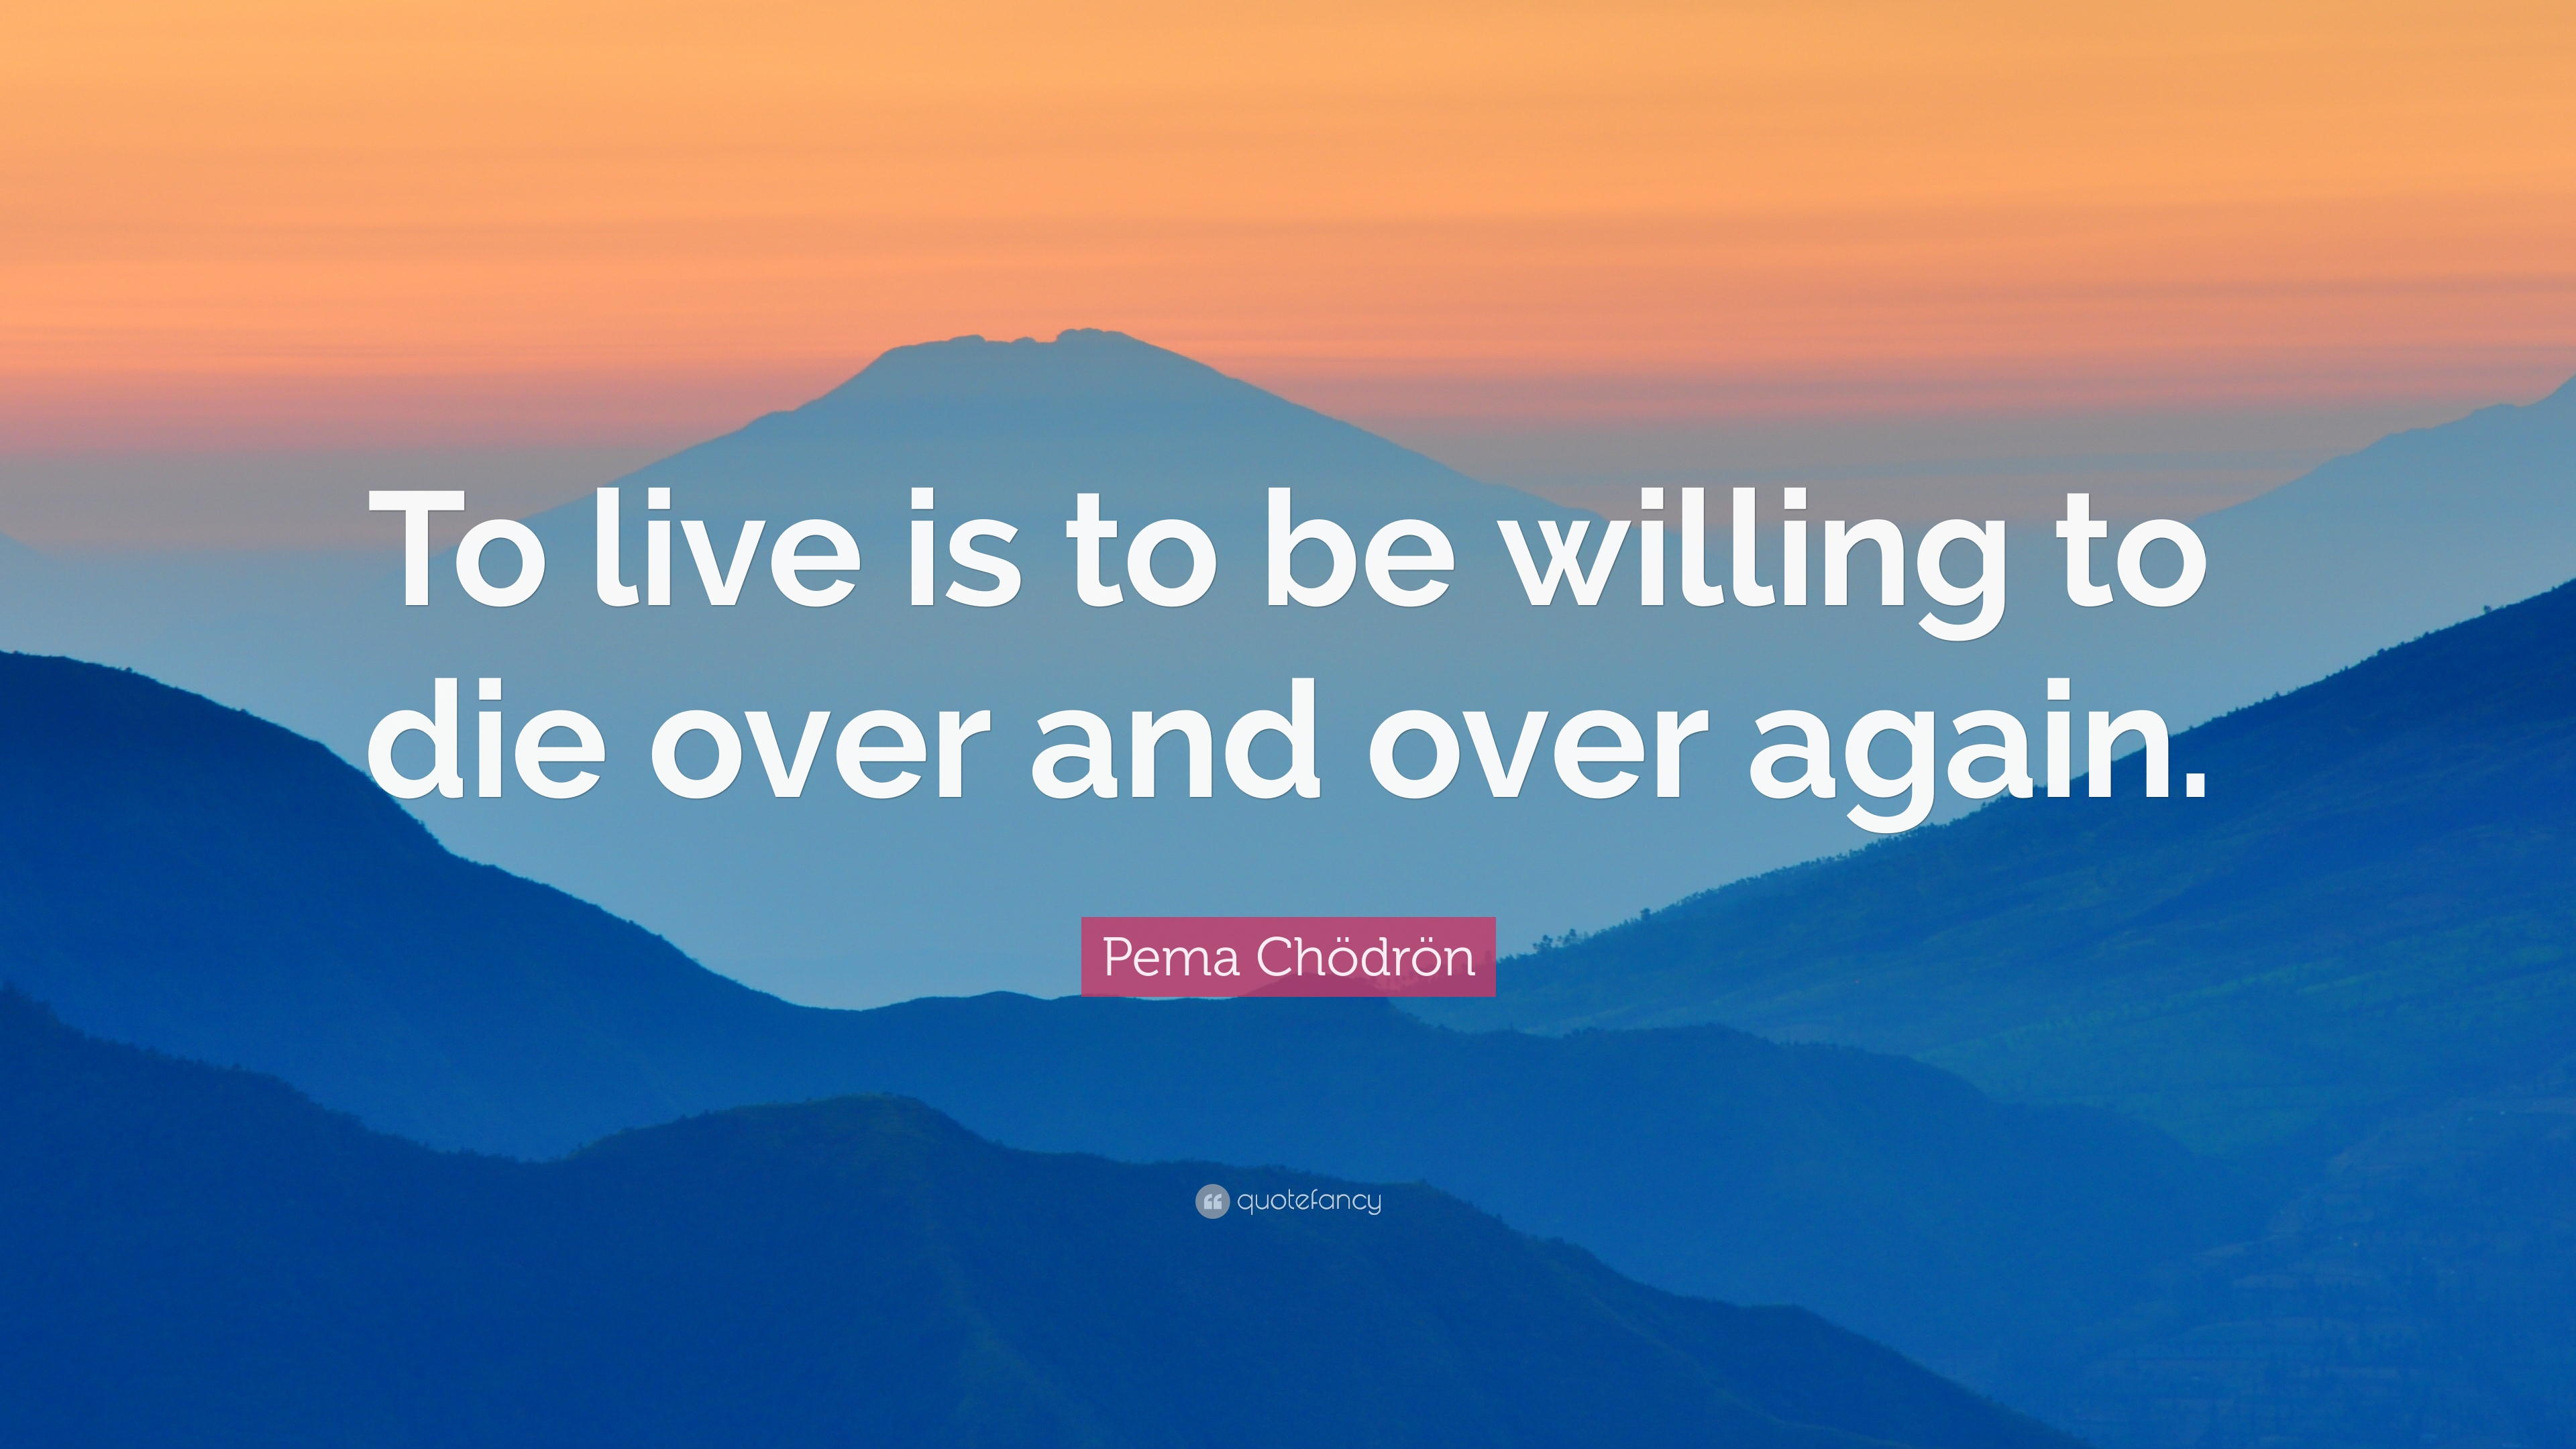 Pema Chödrön Quote To Live Is To Be Willing To Die Over And Over